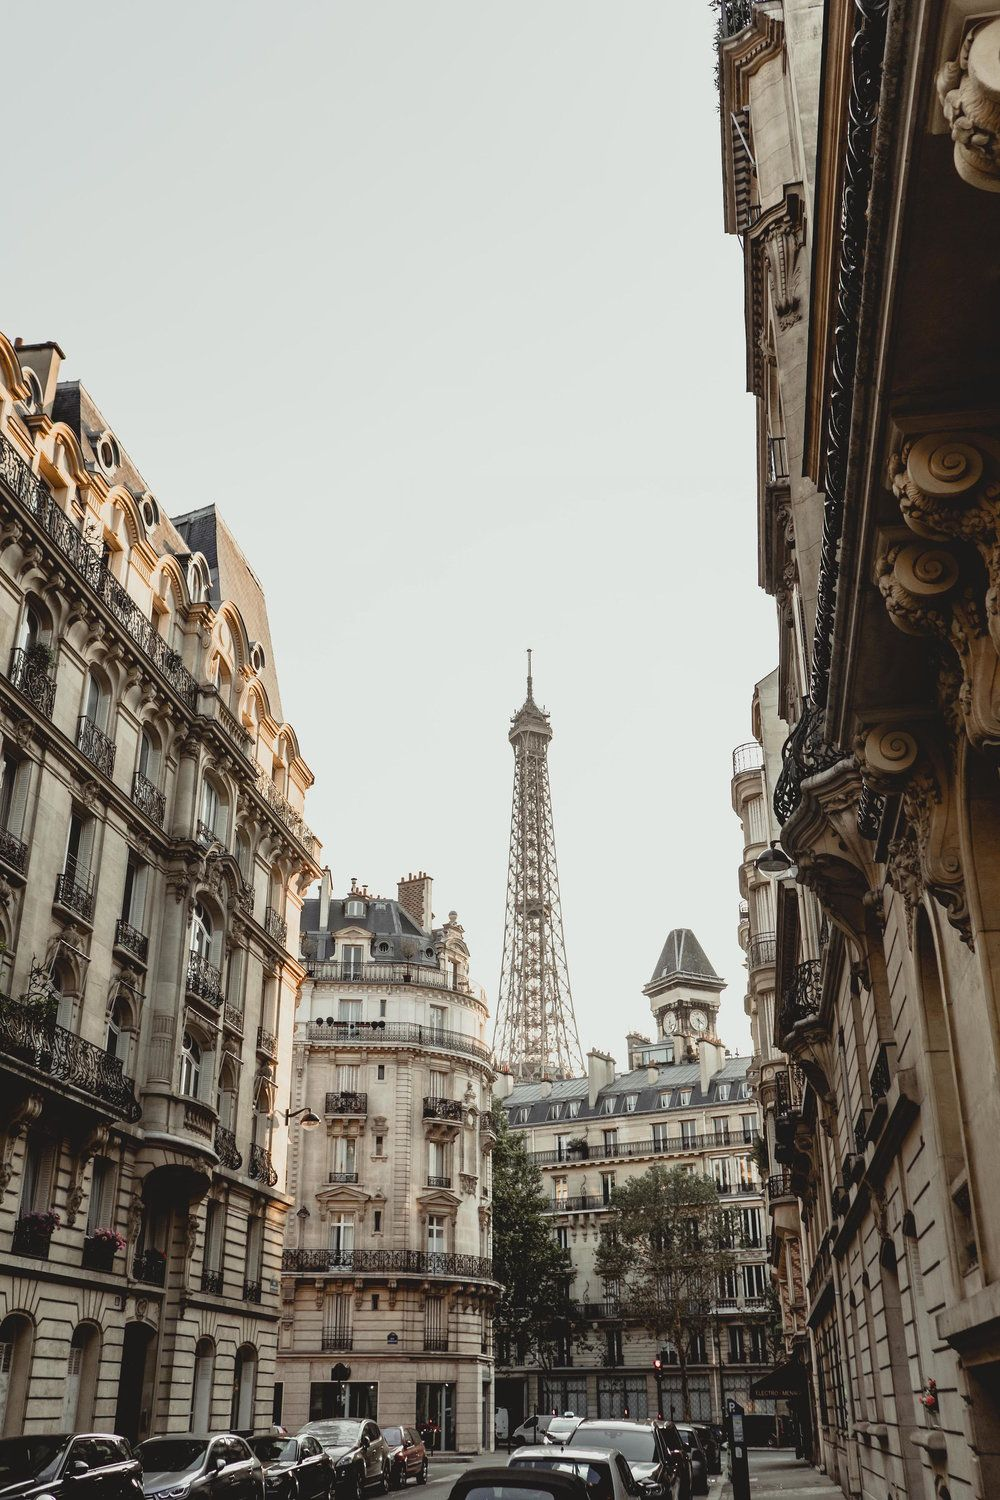 Paris Travel Guide by Anna Nunez - at the Chez Nunez Blog  Includes all my helpful tips and recommendations for enjoying Le Marais and the grand city of Paris like a local! #airbnb #paris #paristravelguide #travelguide #parisrestaurants #paristripplanning #parisfrance #travelingfrance #toureiffel #eiffeltower